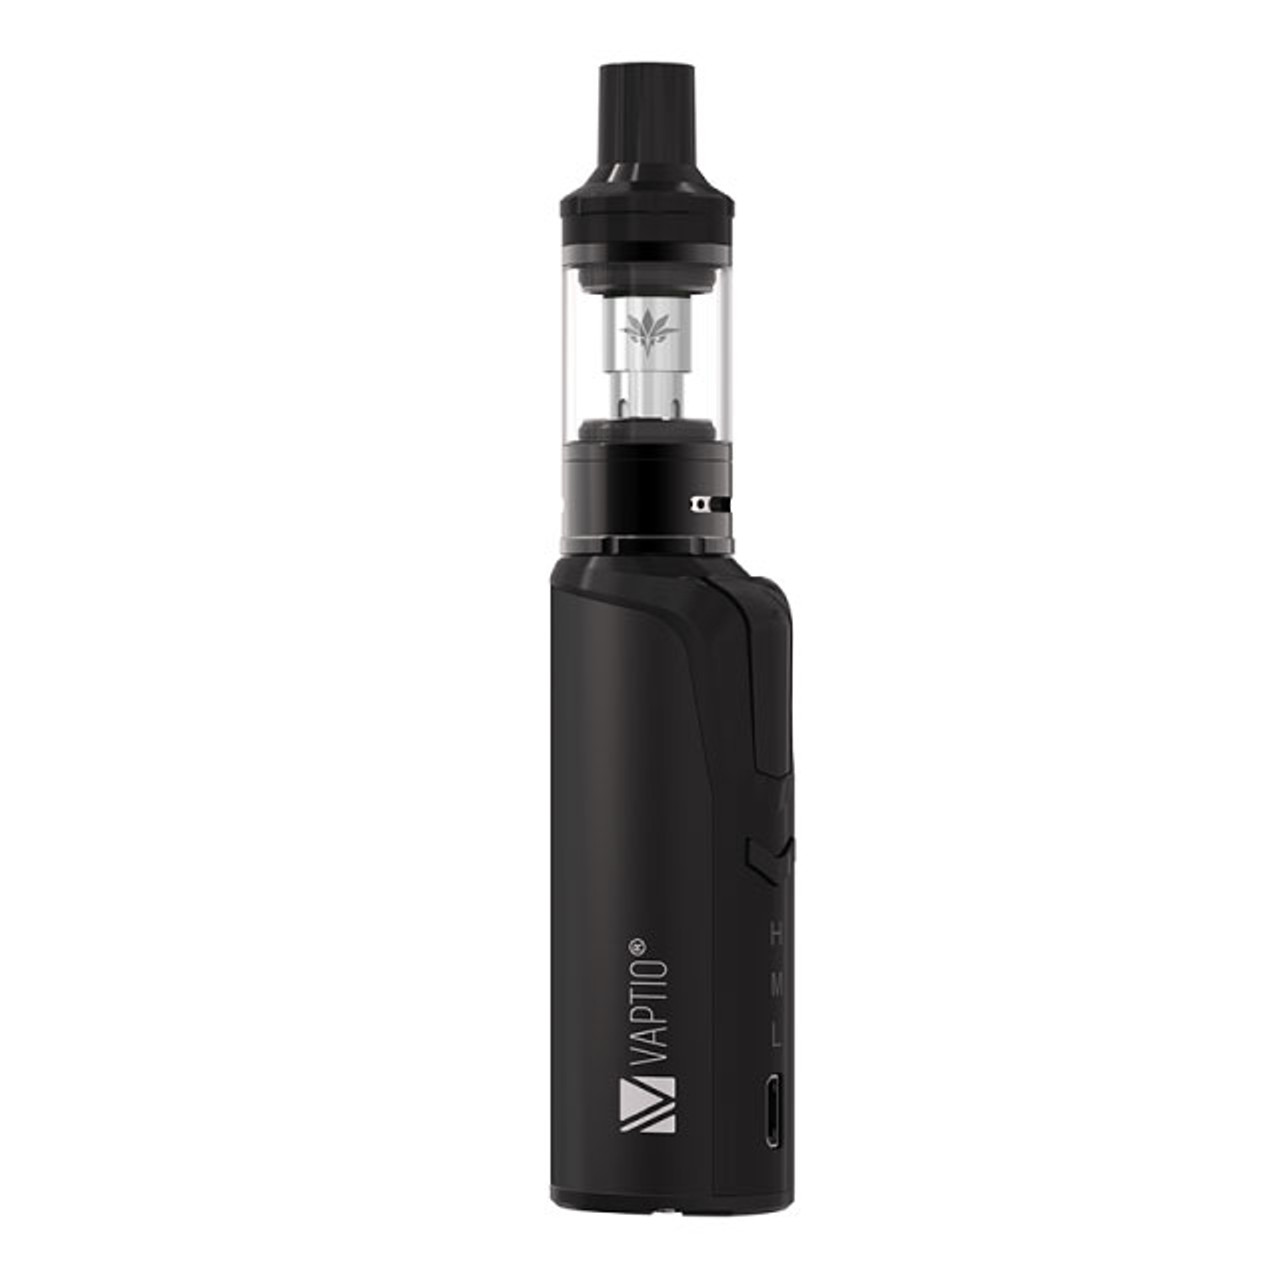 Vaptio Cosmo - best selling beginners vape kit